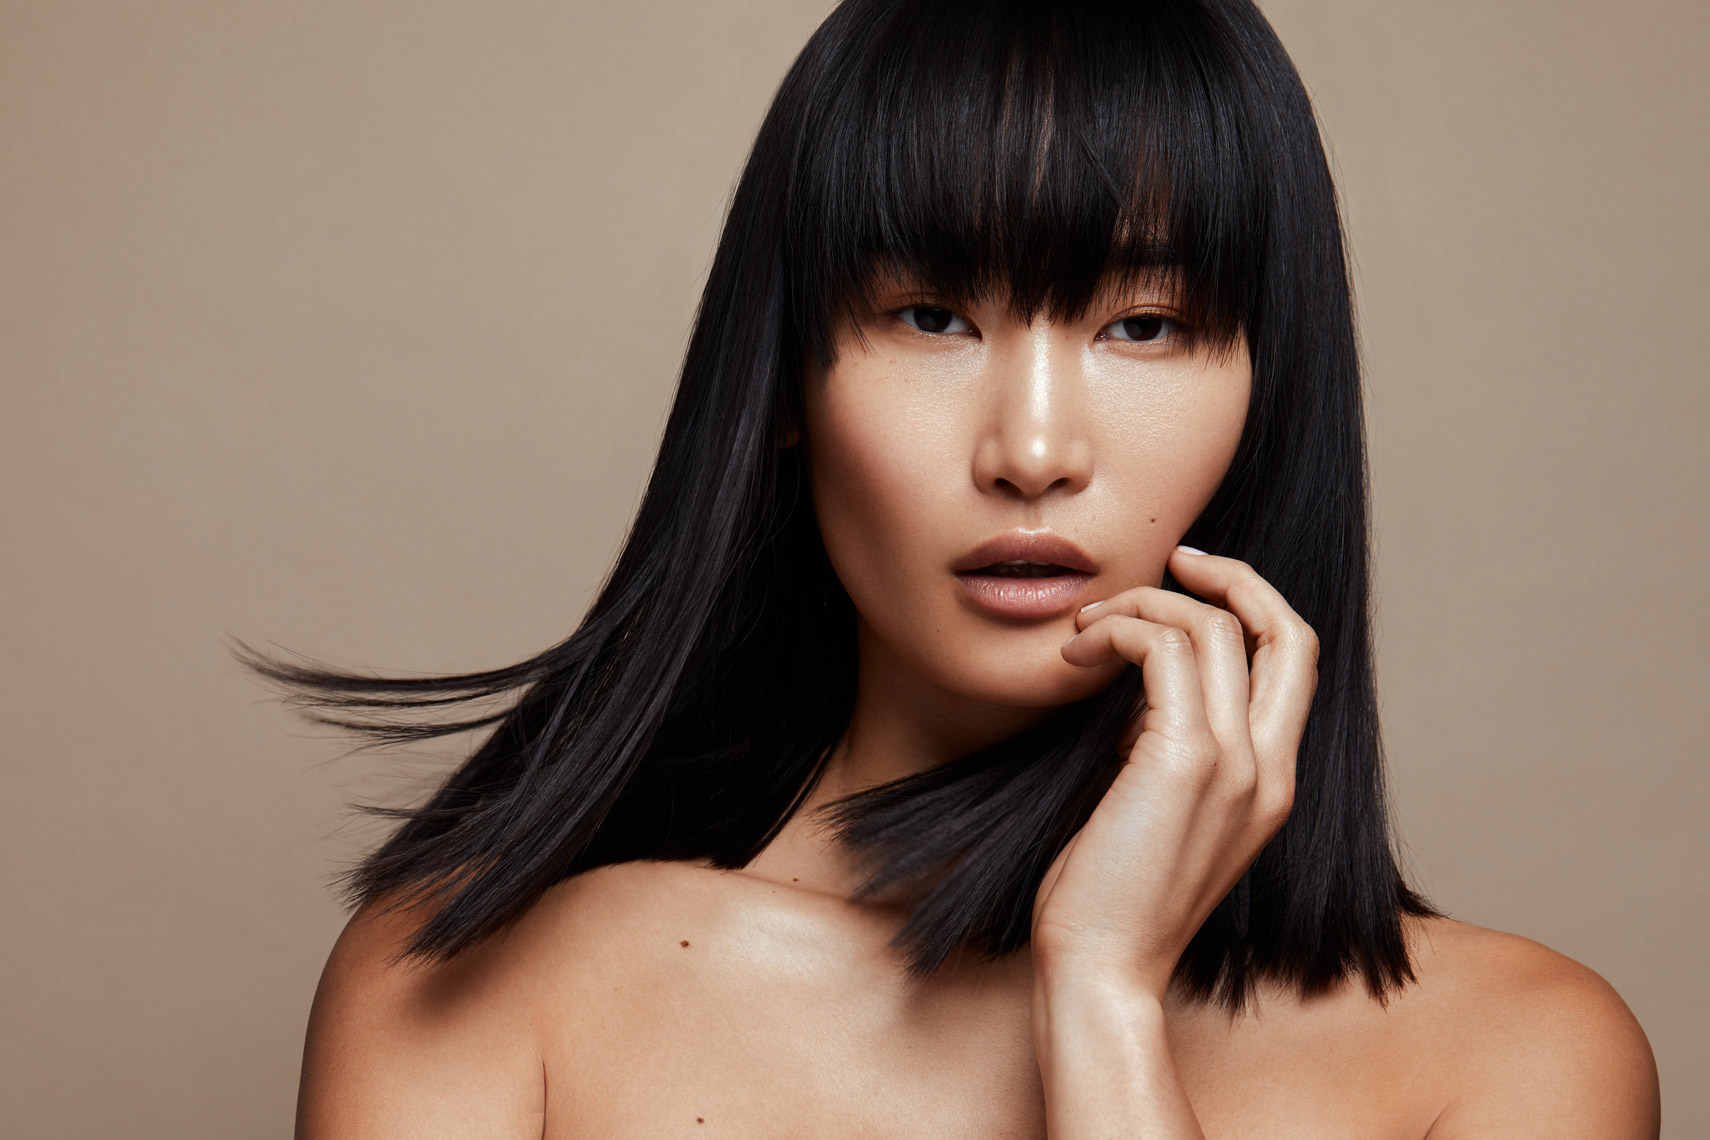 Miki Hamano, Beauty, Portrait, Fashion, Model, Studio Photography, Ian Jacob, Ian Jacob Photography